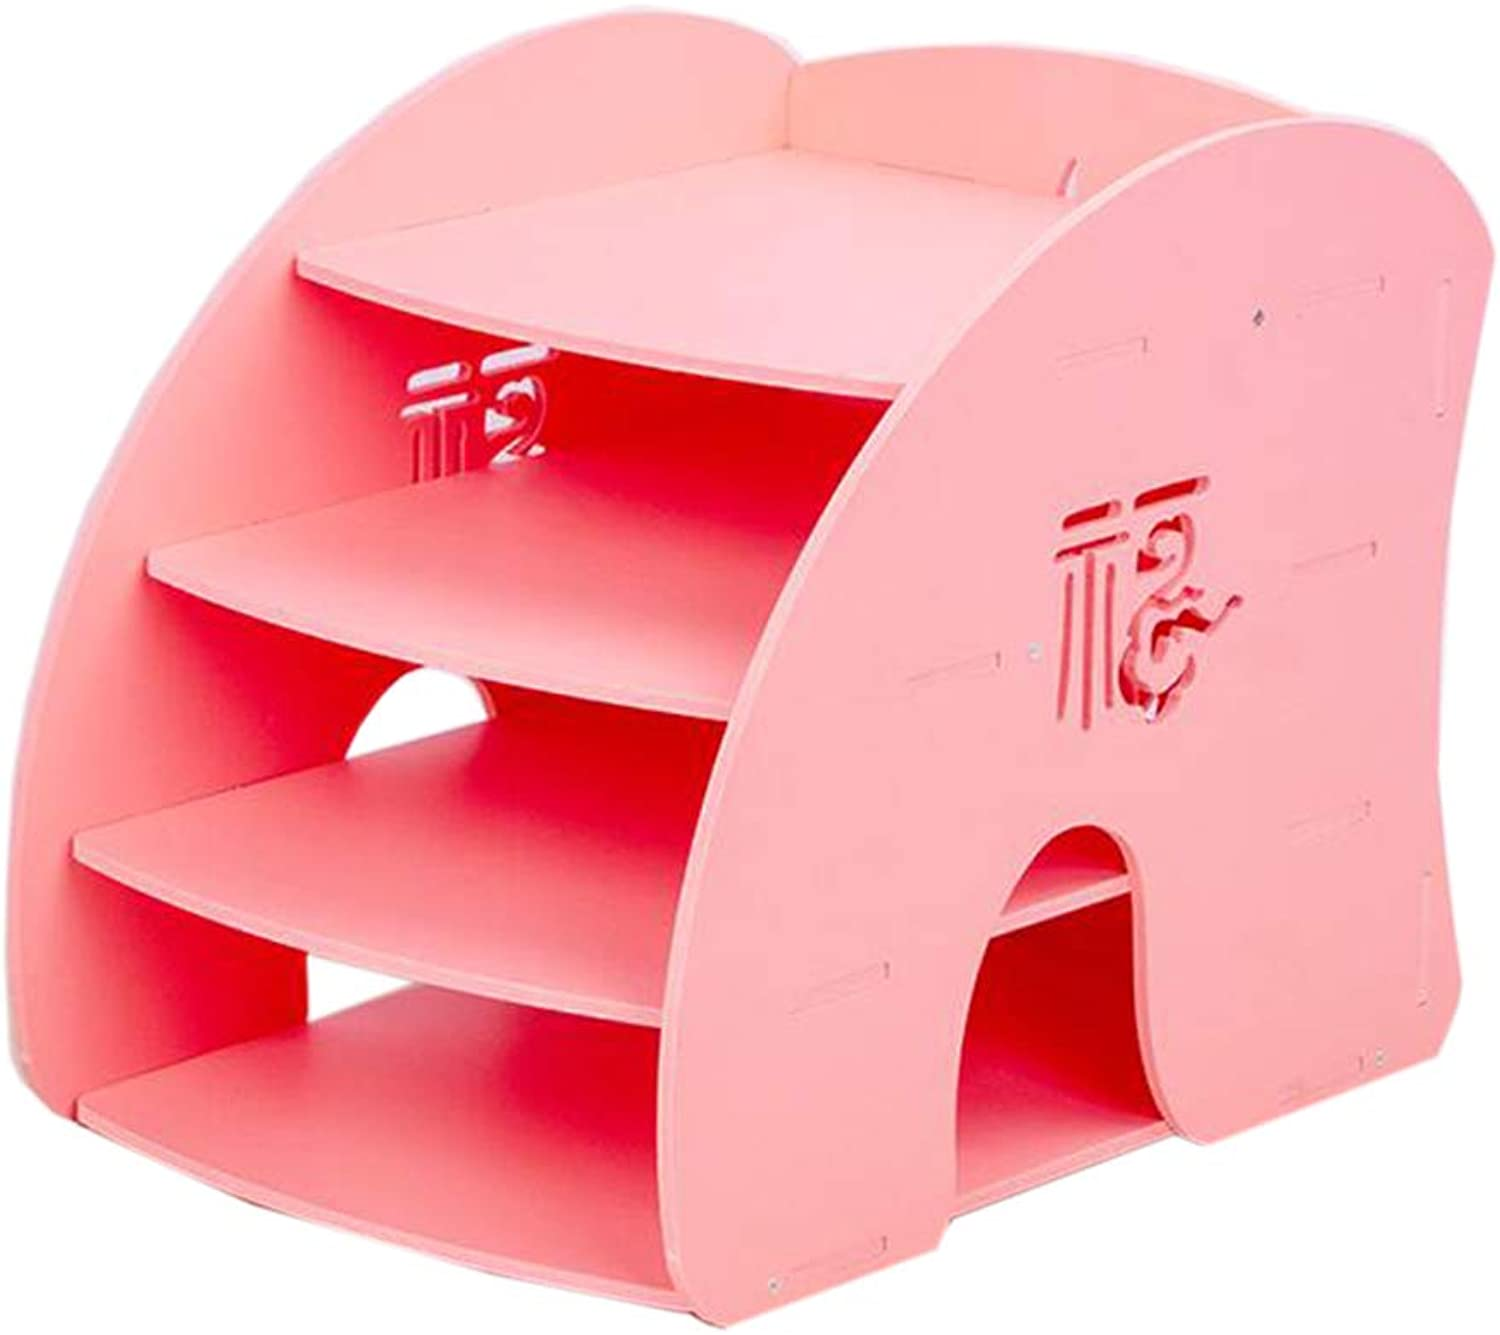 JCAFA Shelves Desktop File Storage Rack Hollow Carving File Holder Office Supplies Desktop Manager Office Storage Shelf (color   Pink, Size   4 Layers)